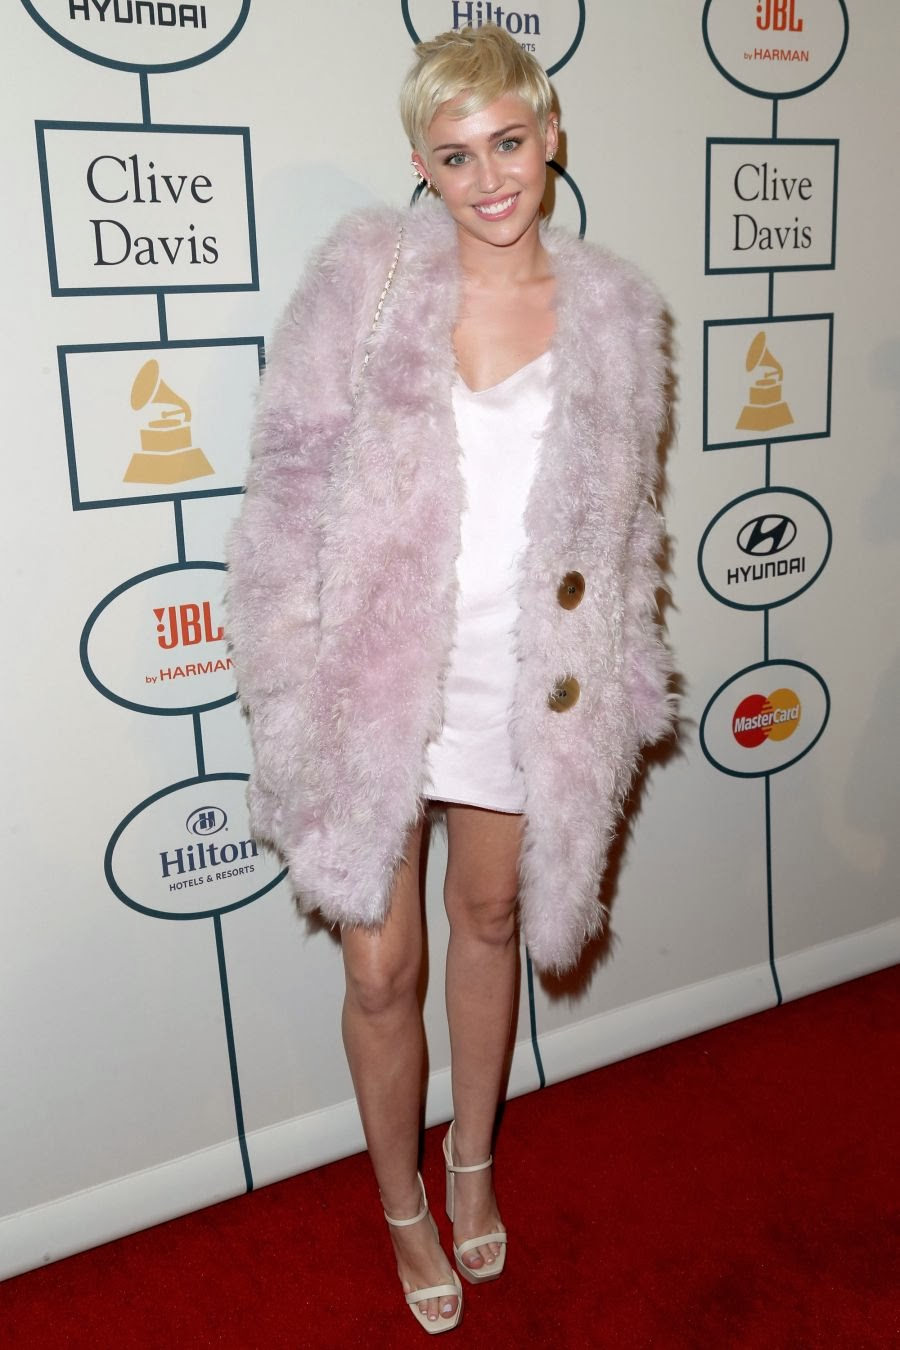 Spicy Miley Cyrus Photos at The 56th Annual GRAMMY Awards Pre-GRAMMY Gala